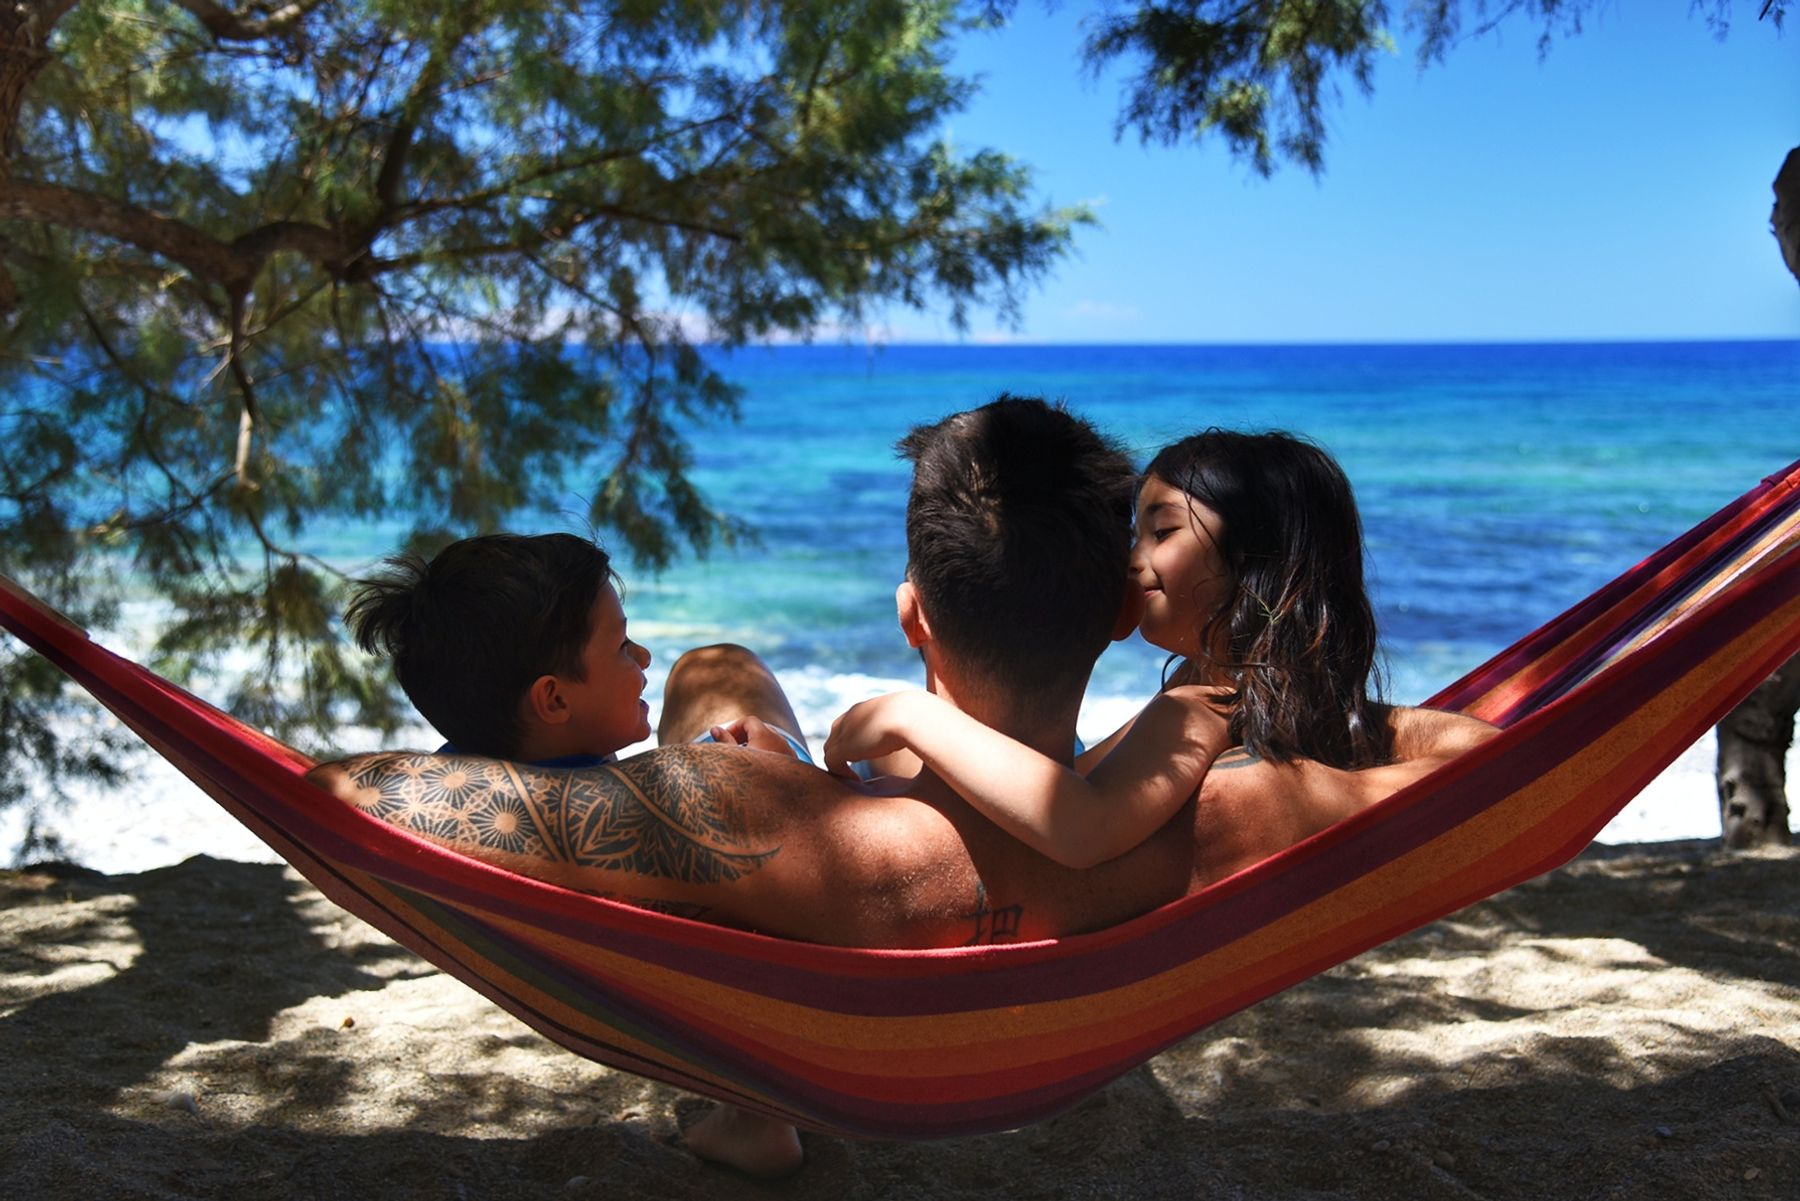 Man lying in a hammock on the beach cuddling with his two children, a boy and a girl,